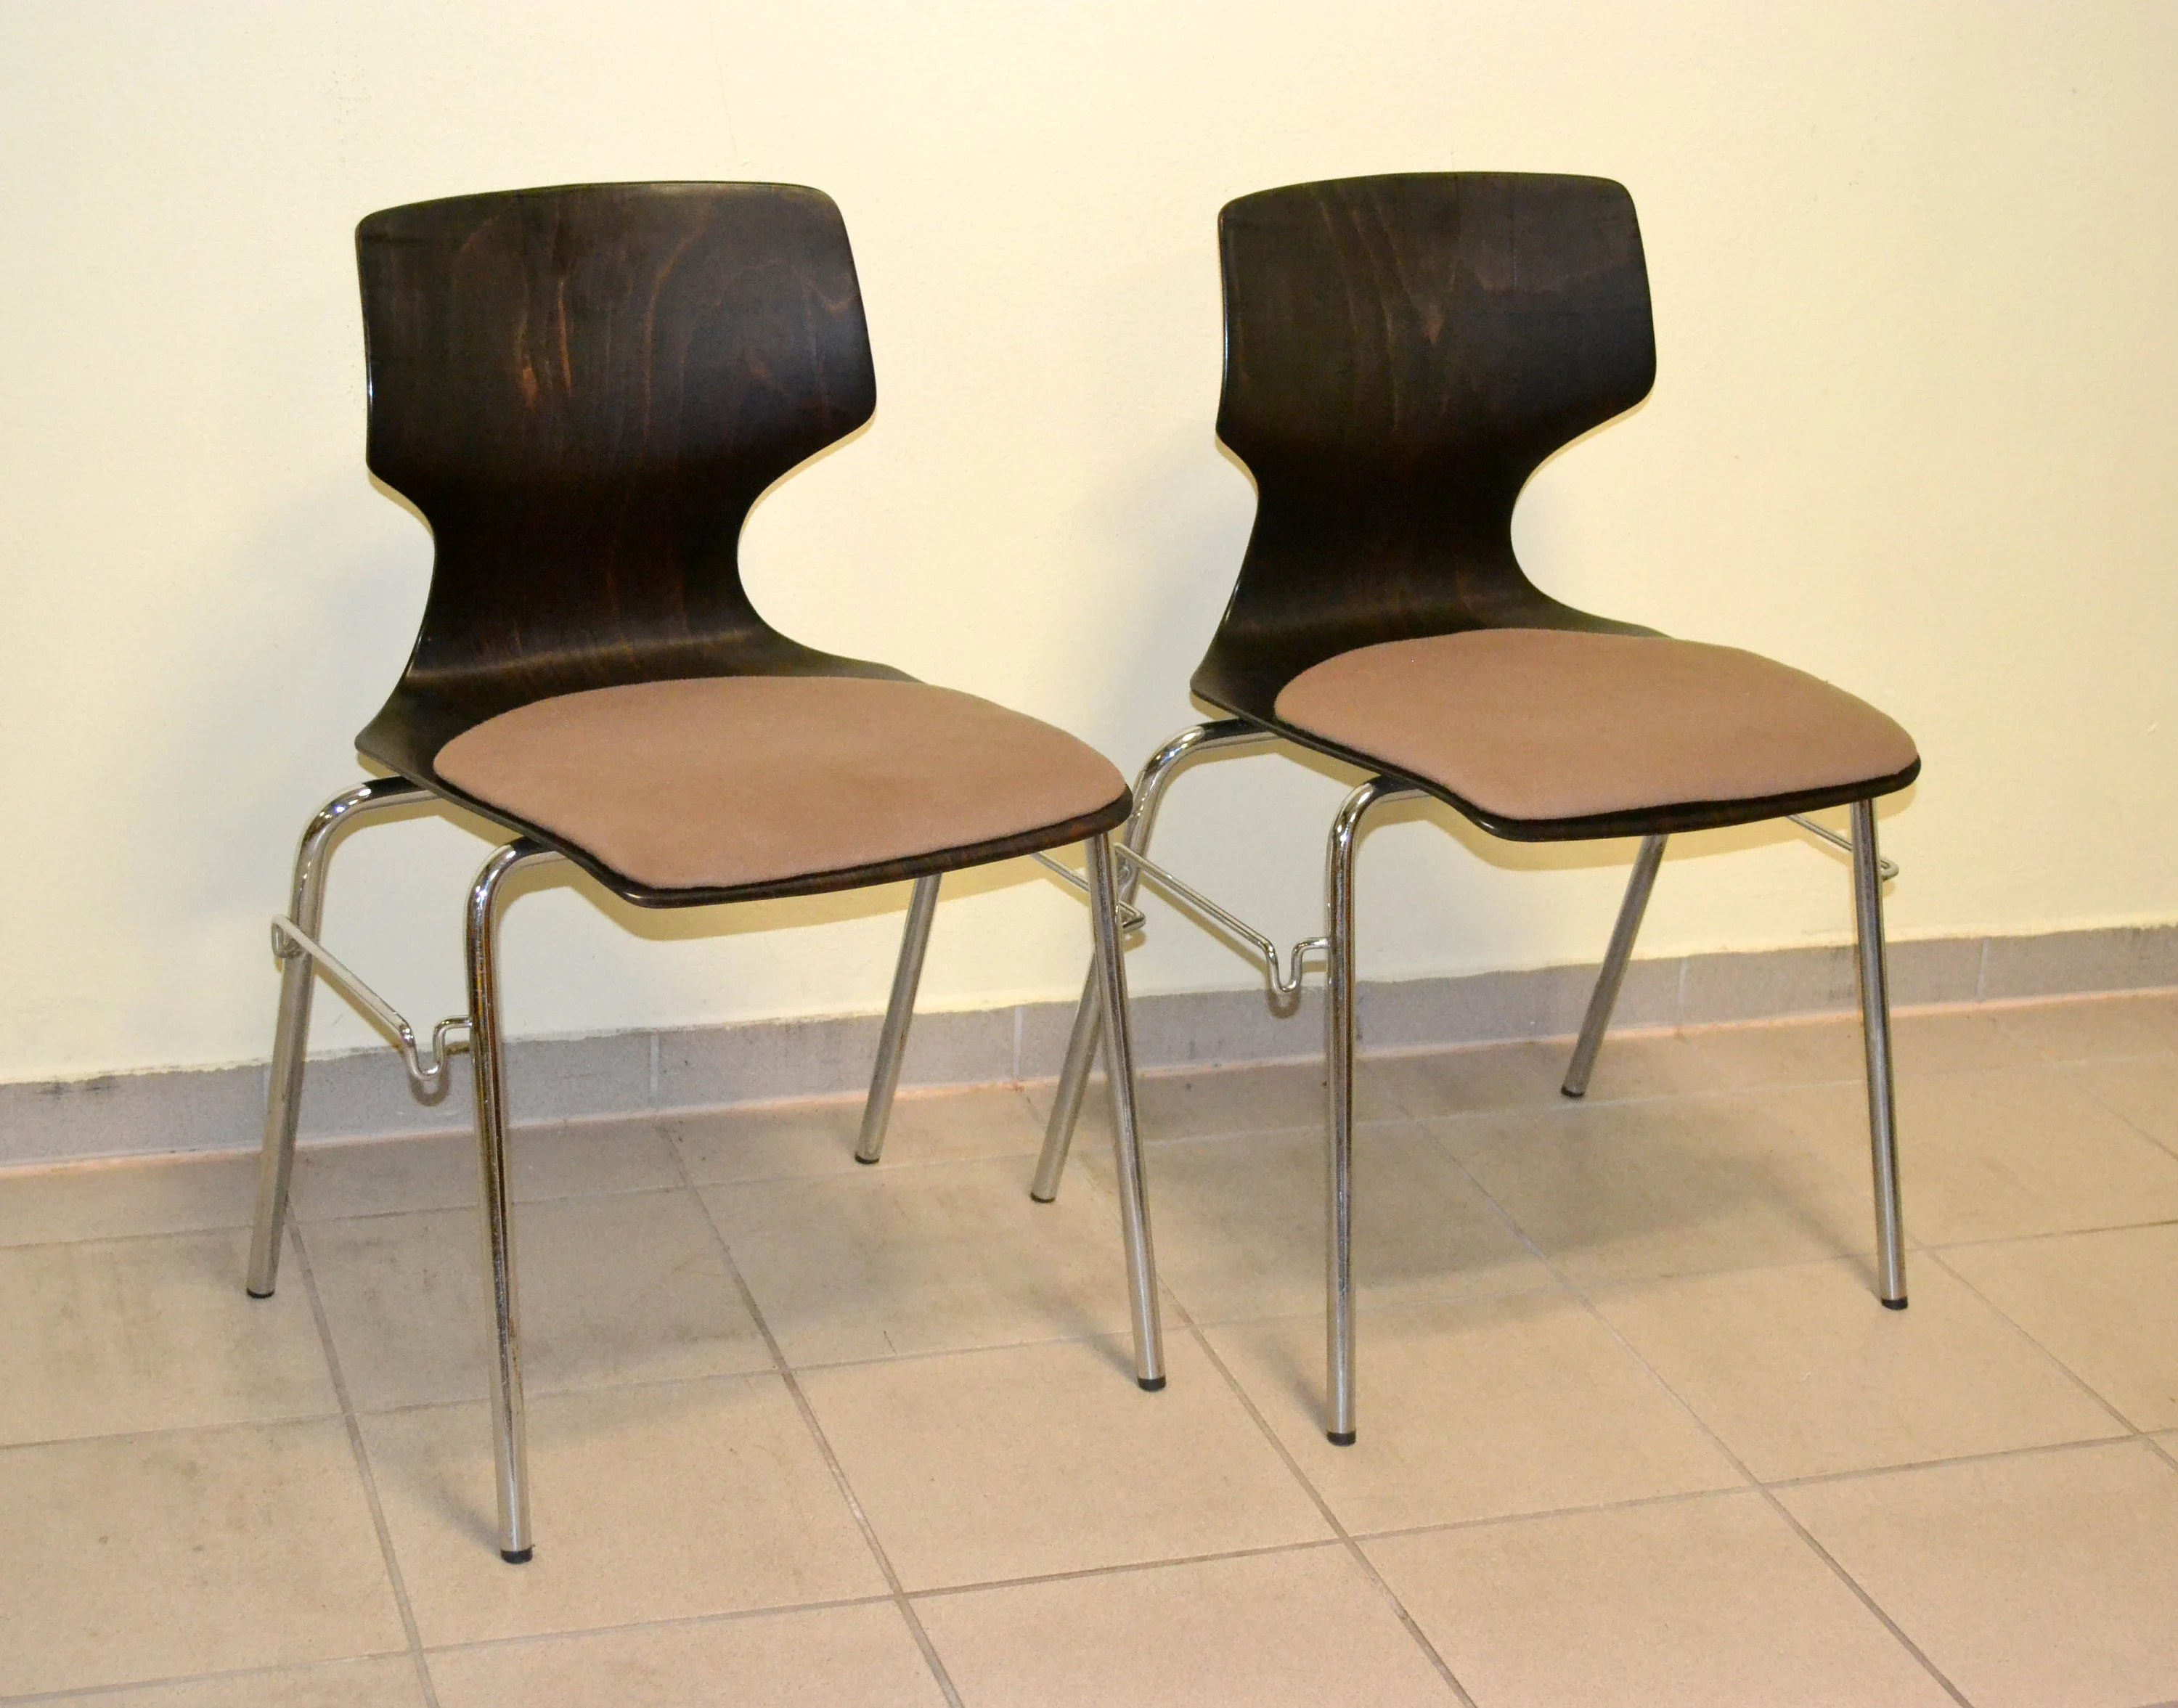 Beautiful Chairs Flötotto Chair 70s Design Chair Vintage 60s Space Age Mid Century Brocante Wood Wood Chrome Chair Waiting Room Retro Modern